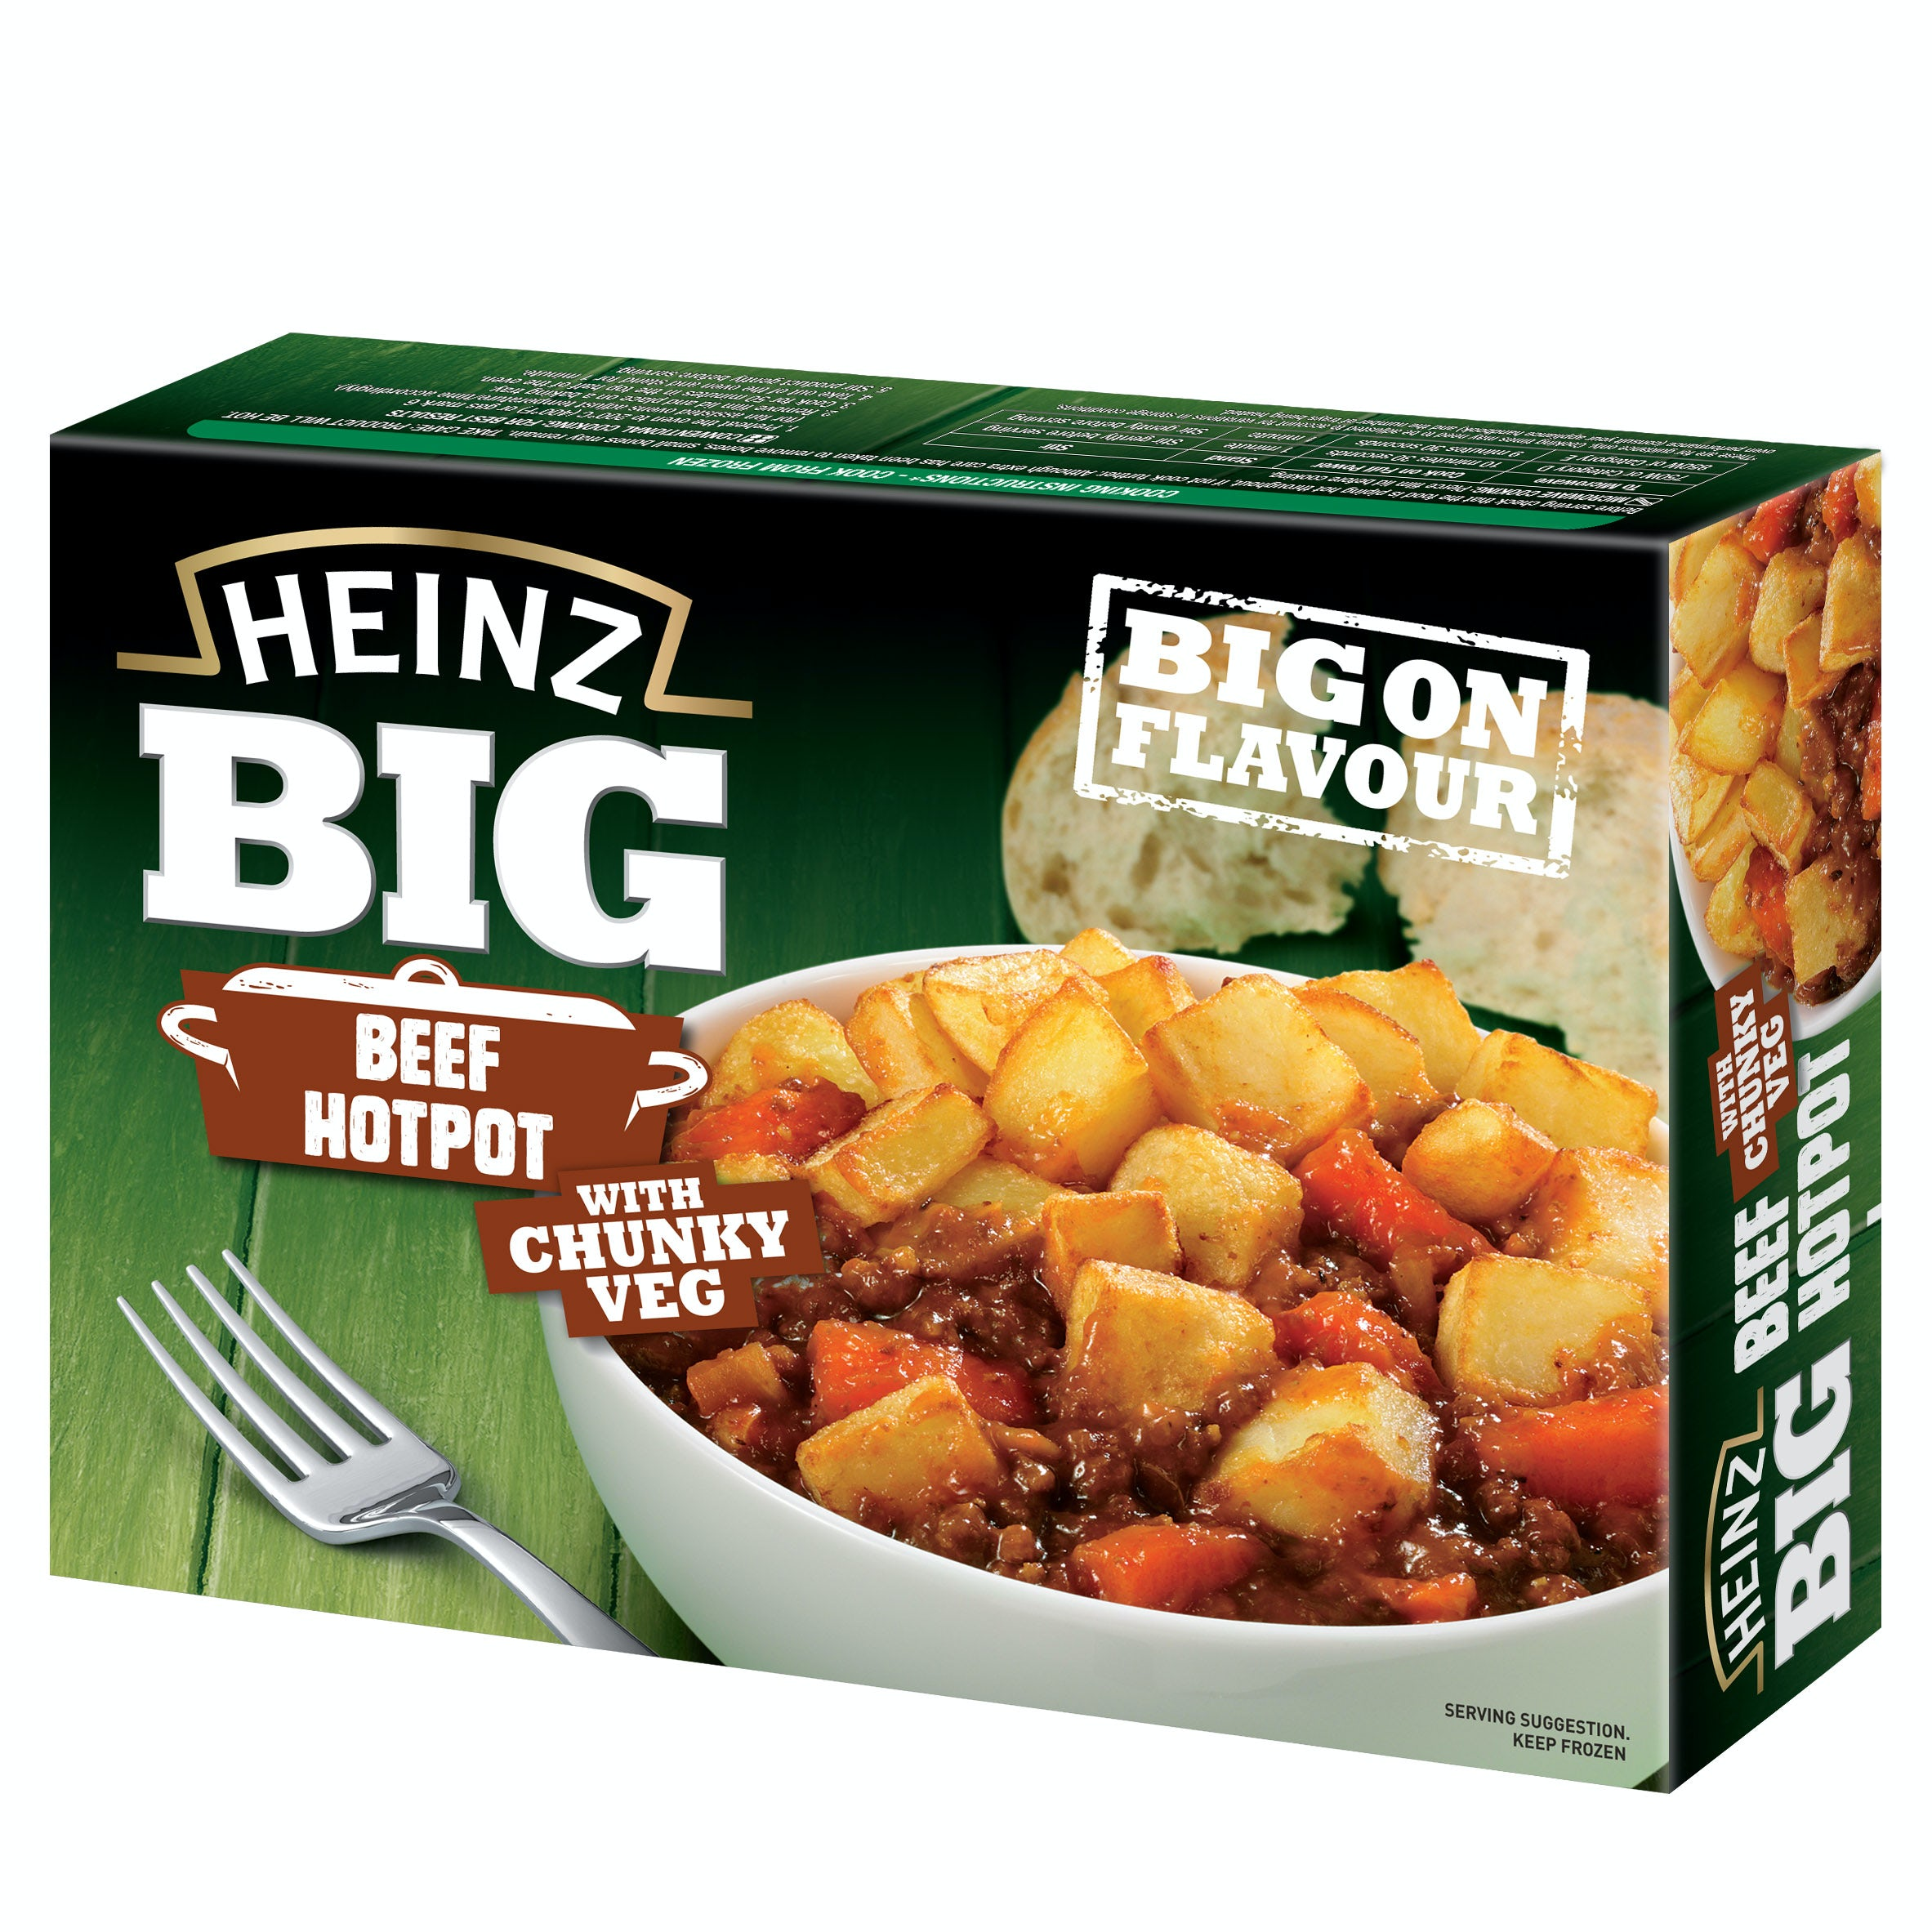 innovation at heinz Recent news from the kraft heinz company the kraft heinz company provides high quality, great taste and nutrition for all eating occasions whether at home, in restaurants or on the go.